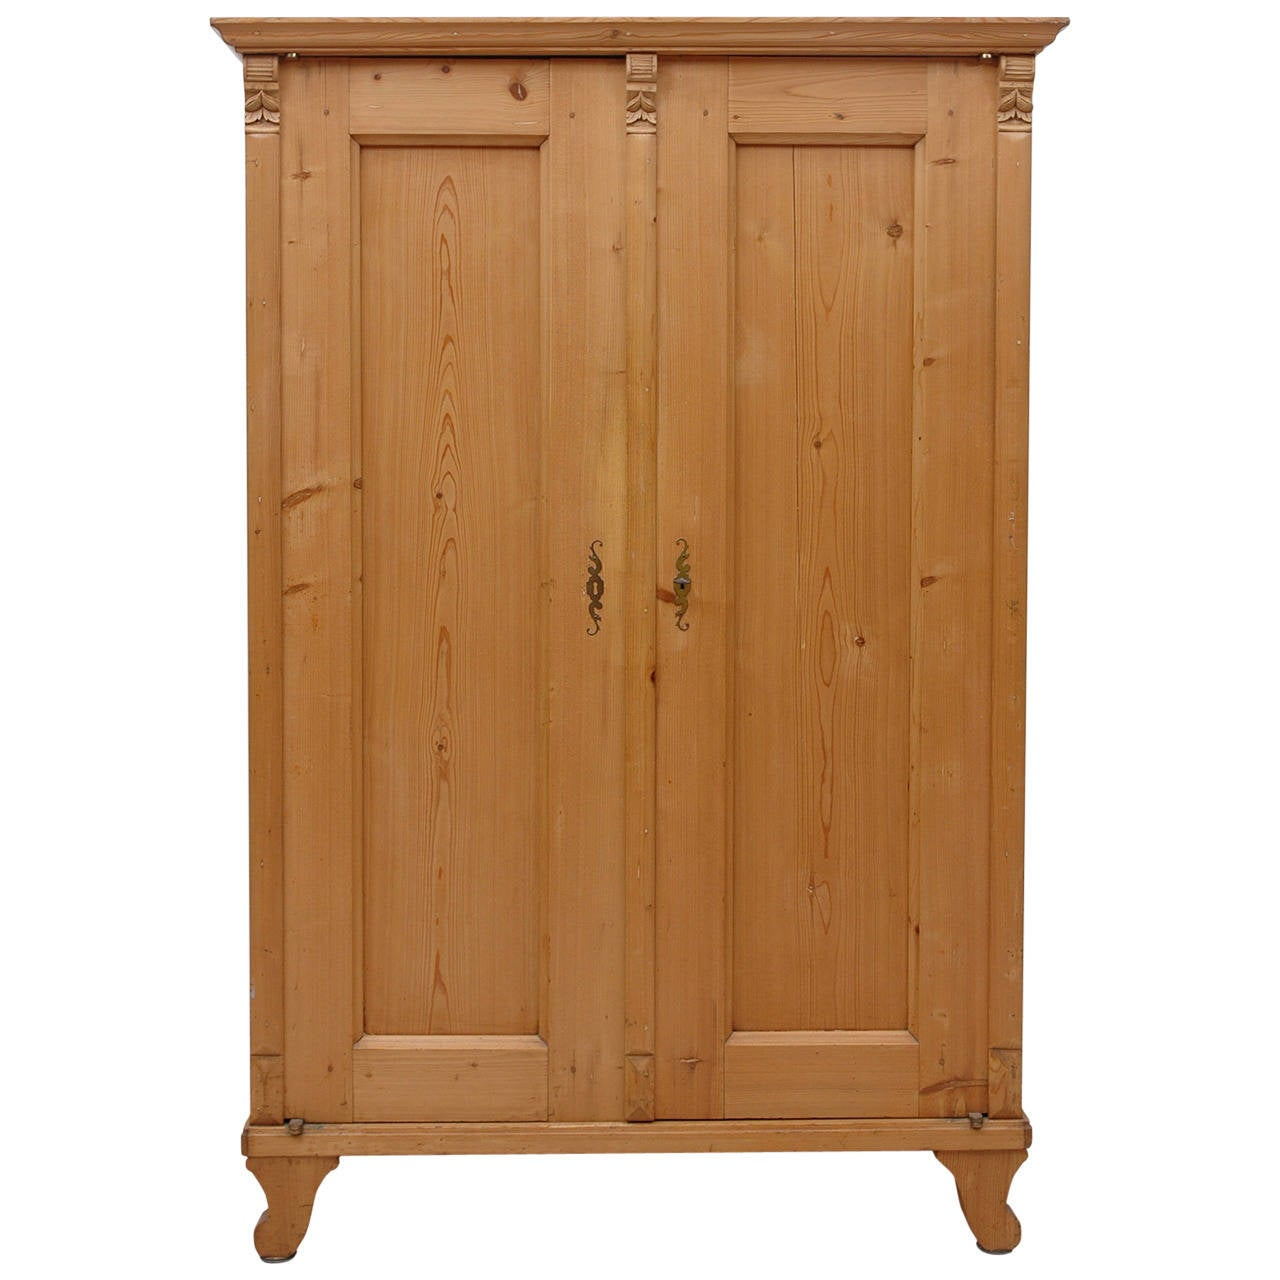 19th century austrian armoire in pine at 1stdibs. Black Bedroom Furniture Sets. Home Design Ideas